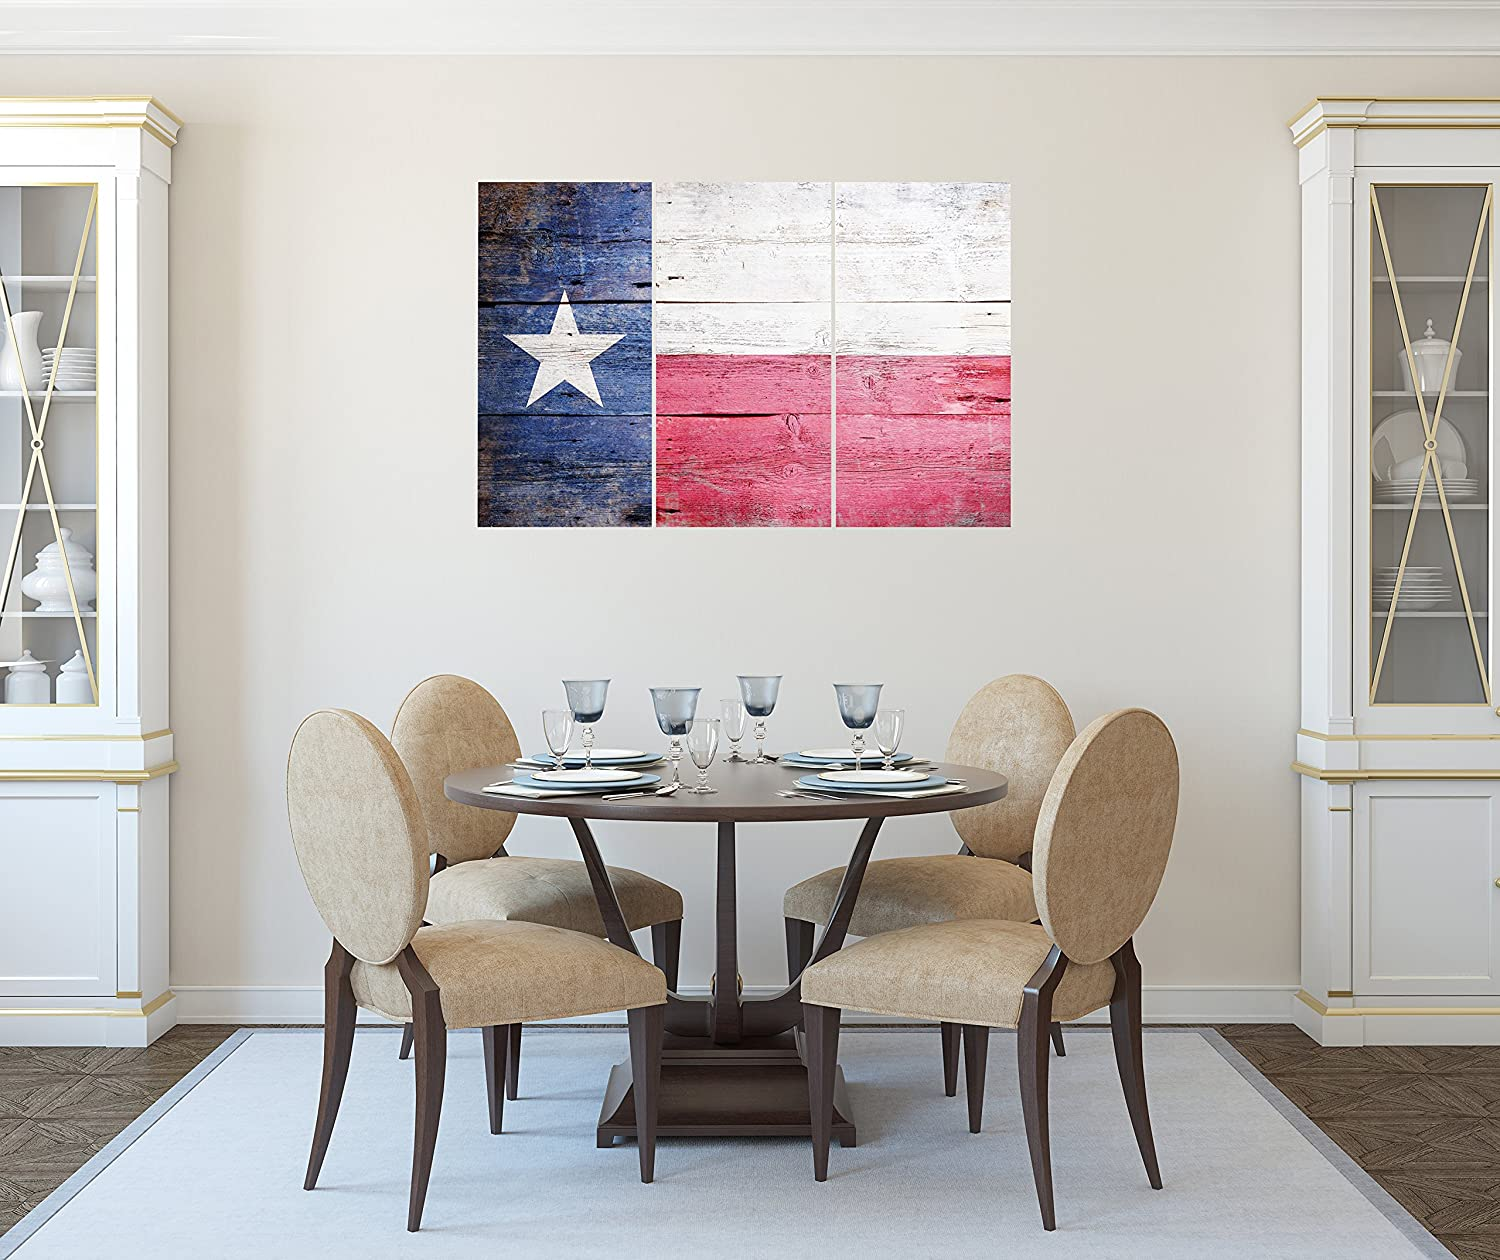 Kitchen 16x36 3 Piece Set Rustic Wood Look for Dining /& Living Room Total 36x48 inch Texas State Flag Canvas Wall Art Decor Bedroom /& Office Lovely Home Essentials - Large Decorative /& Modern Multi Panel Split Prints